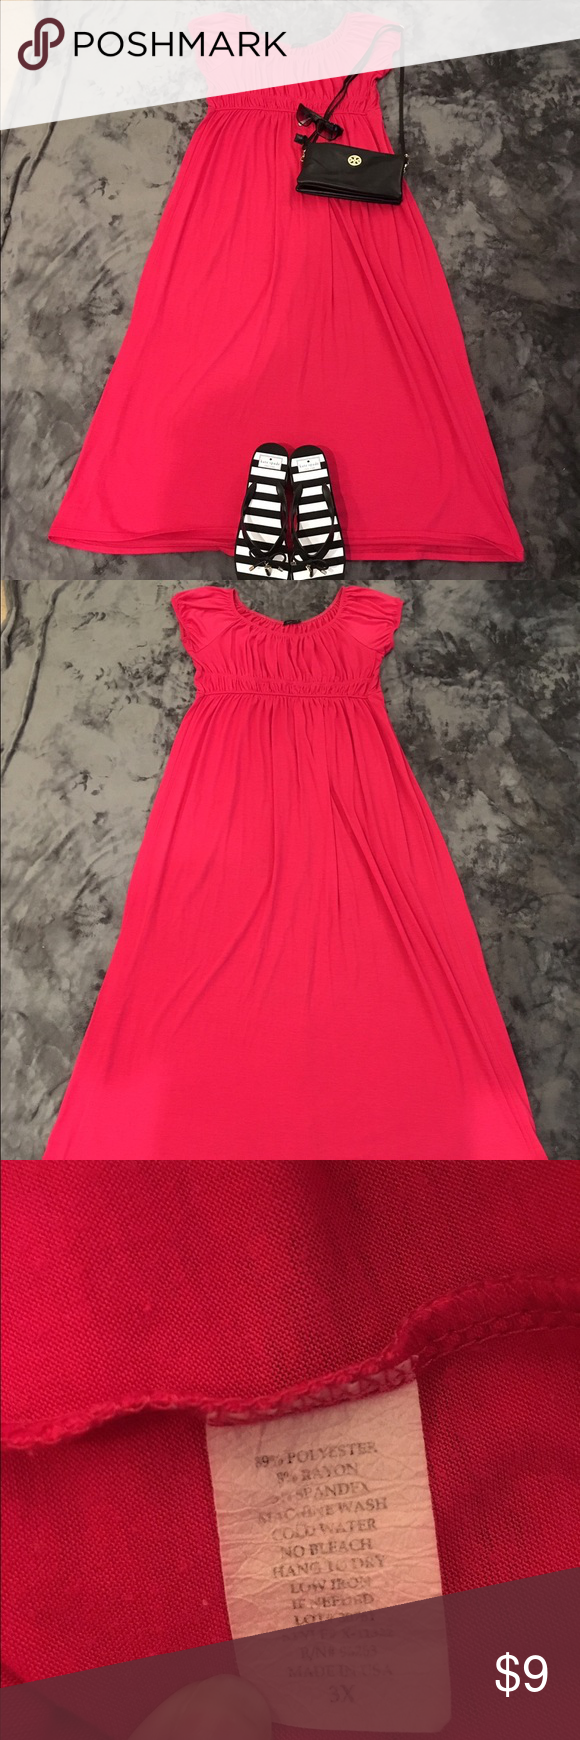 Empire waist ankle length pink dress I love this dress. Pink, scoop neck, empire waist, super flattering dress, says it's a 3X but it fits more like an XL. Good condition and gently used. Dresses